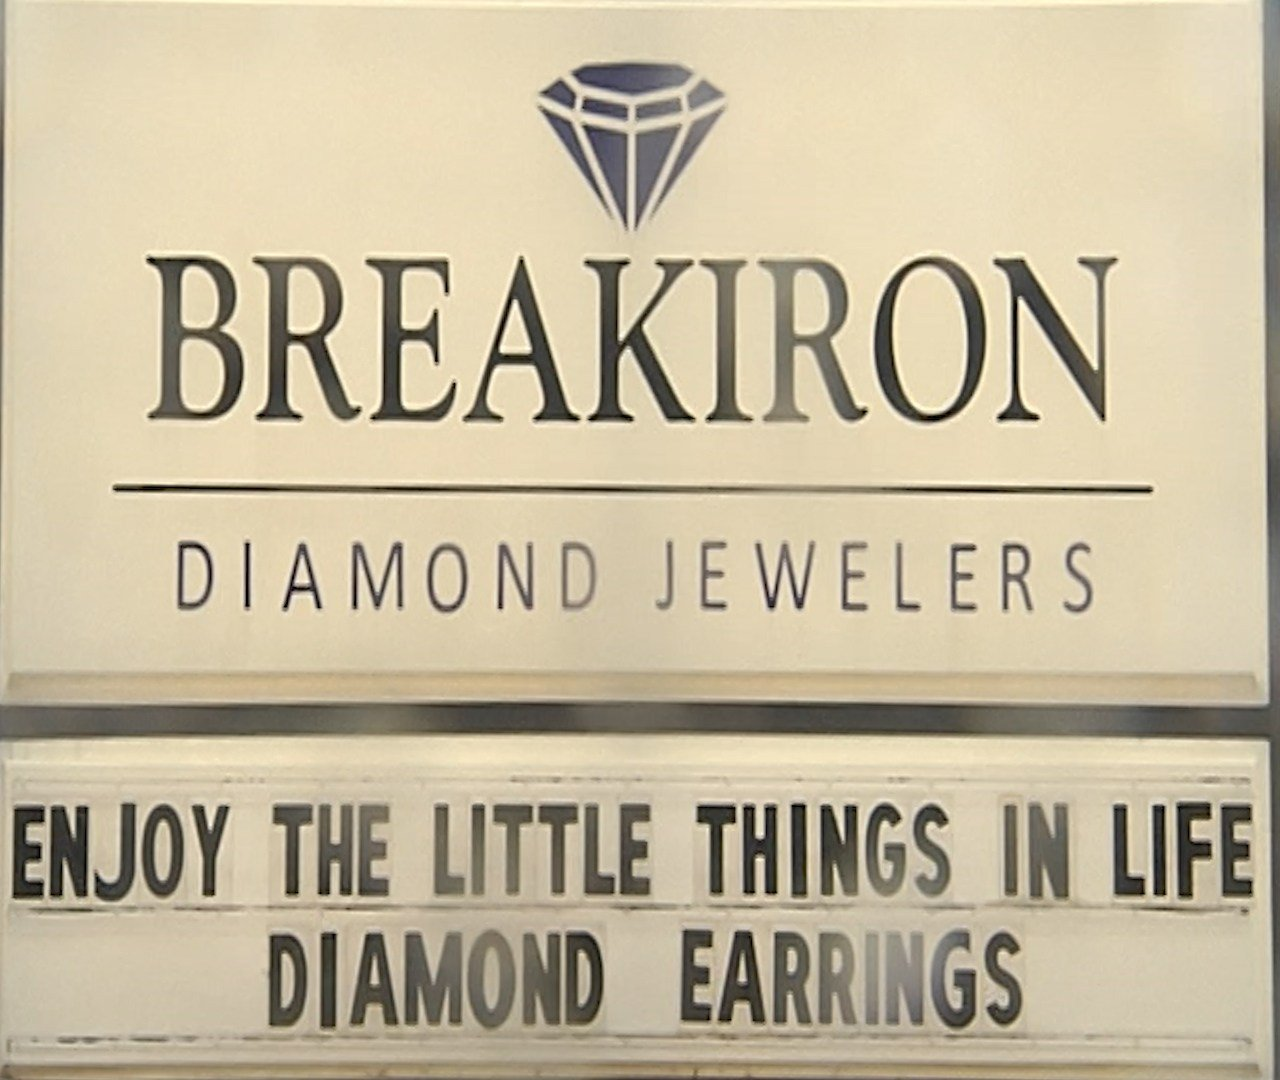 Breakiron Diamond Jewelers